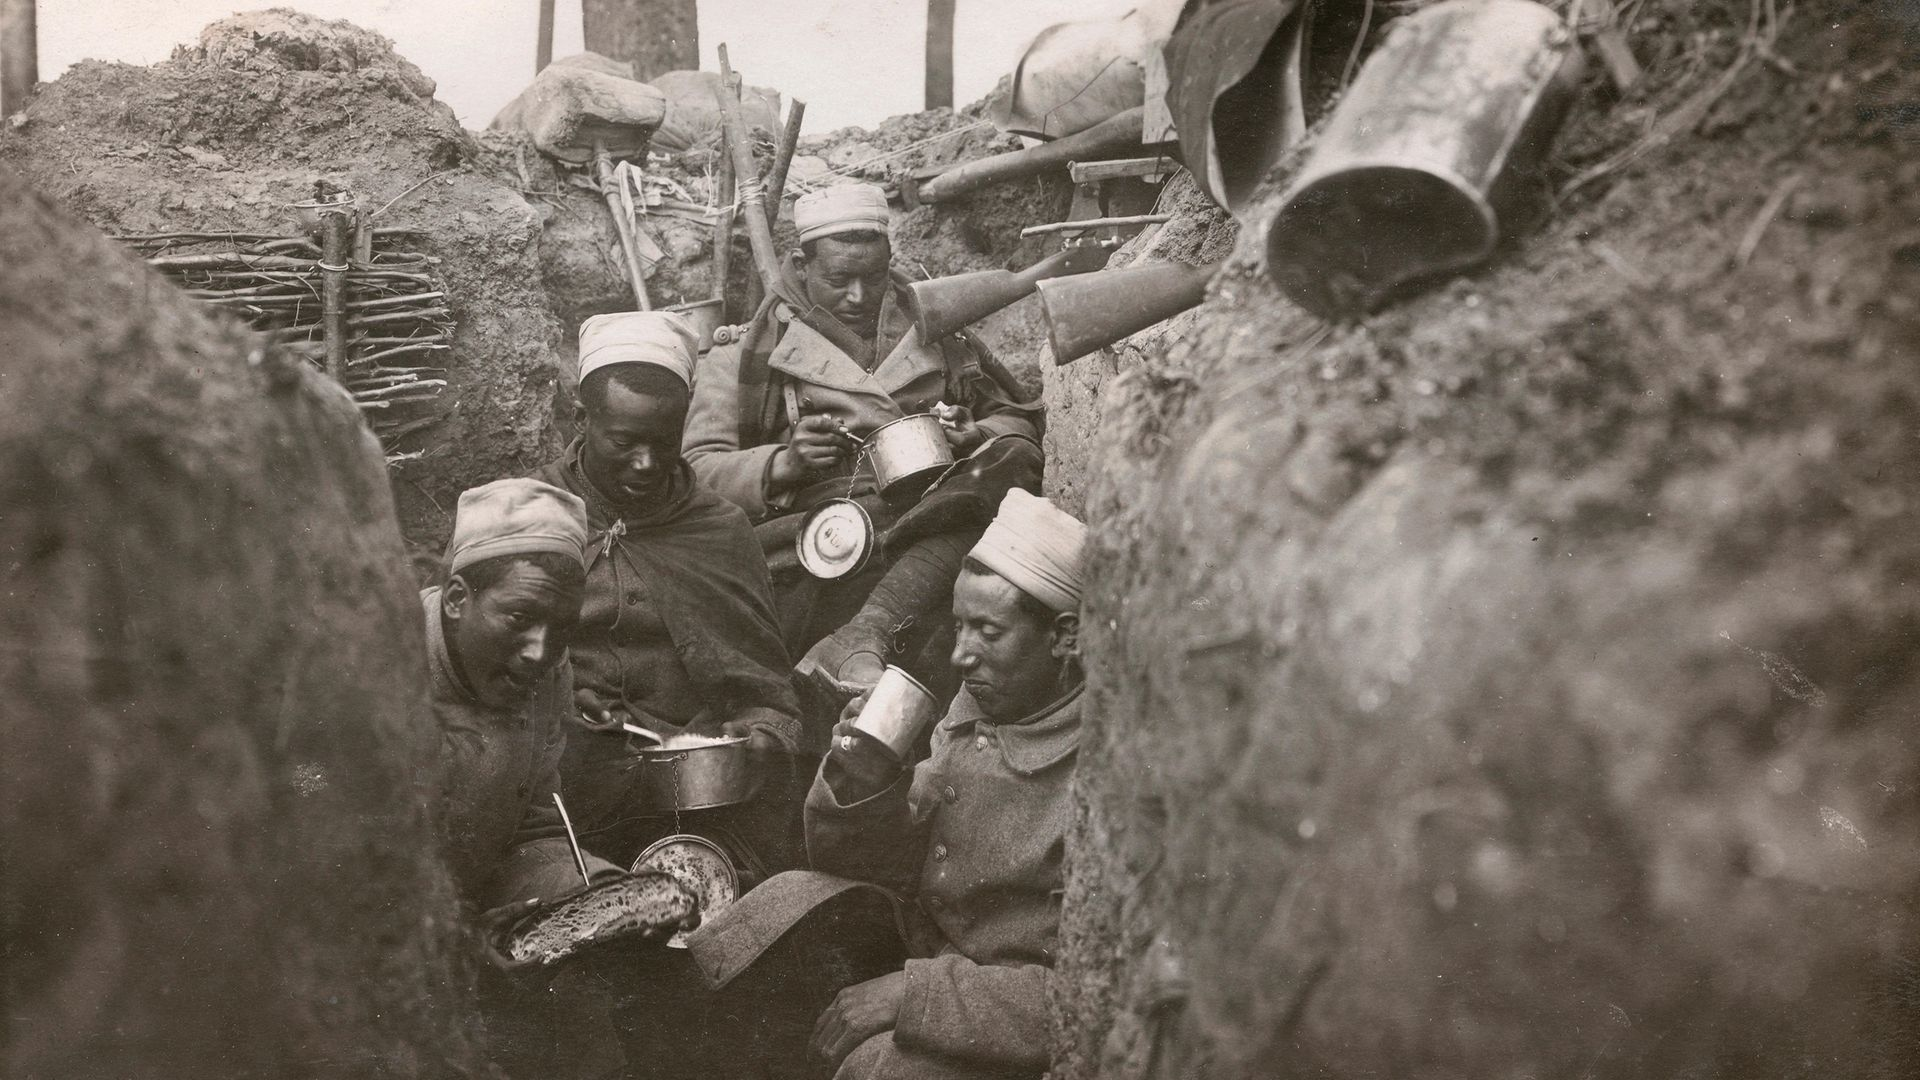 Senegalese infantrymen in the French army eat in their trench, in a photograph from 1915 - Credit: Corbis via Getty Images